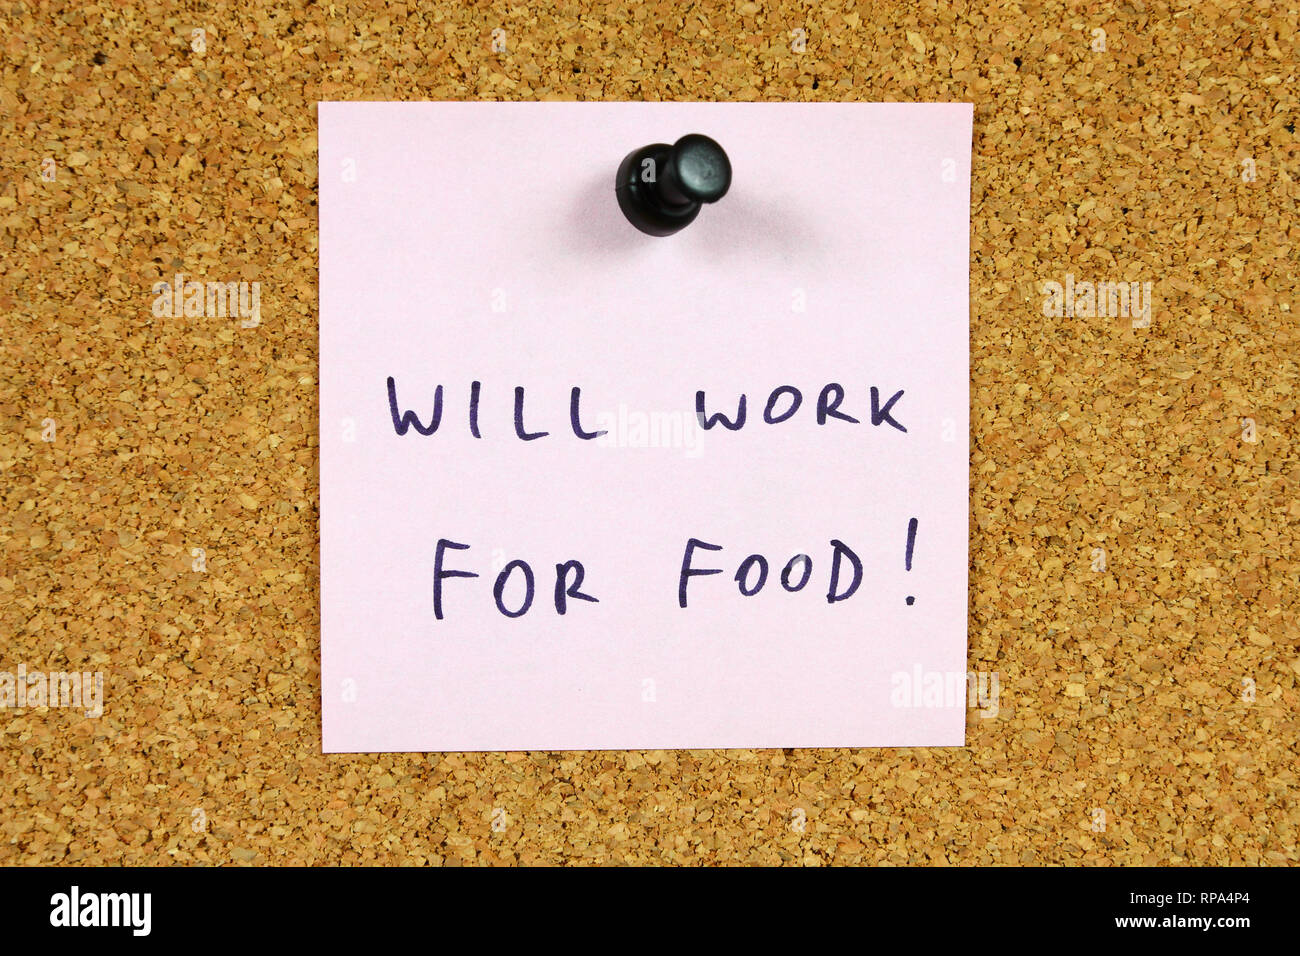 Pink sticky note pinned to an office notice board. Will work for food - unemployment, financial crisis message. - Stock Image